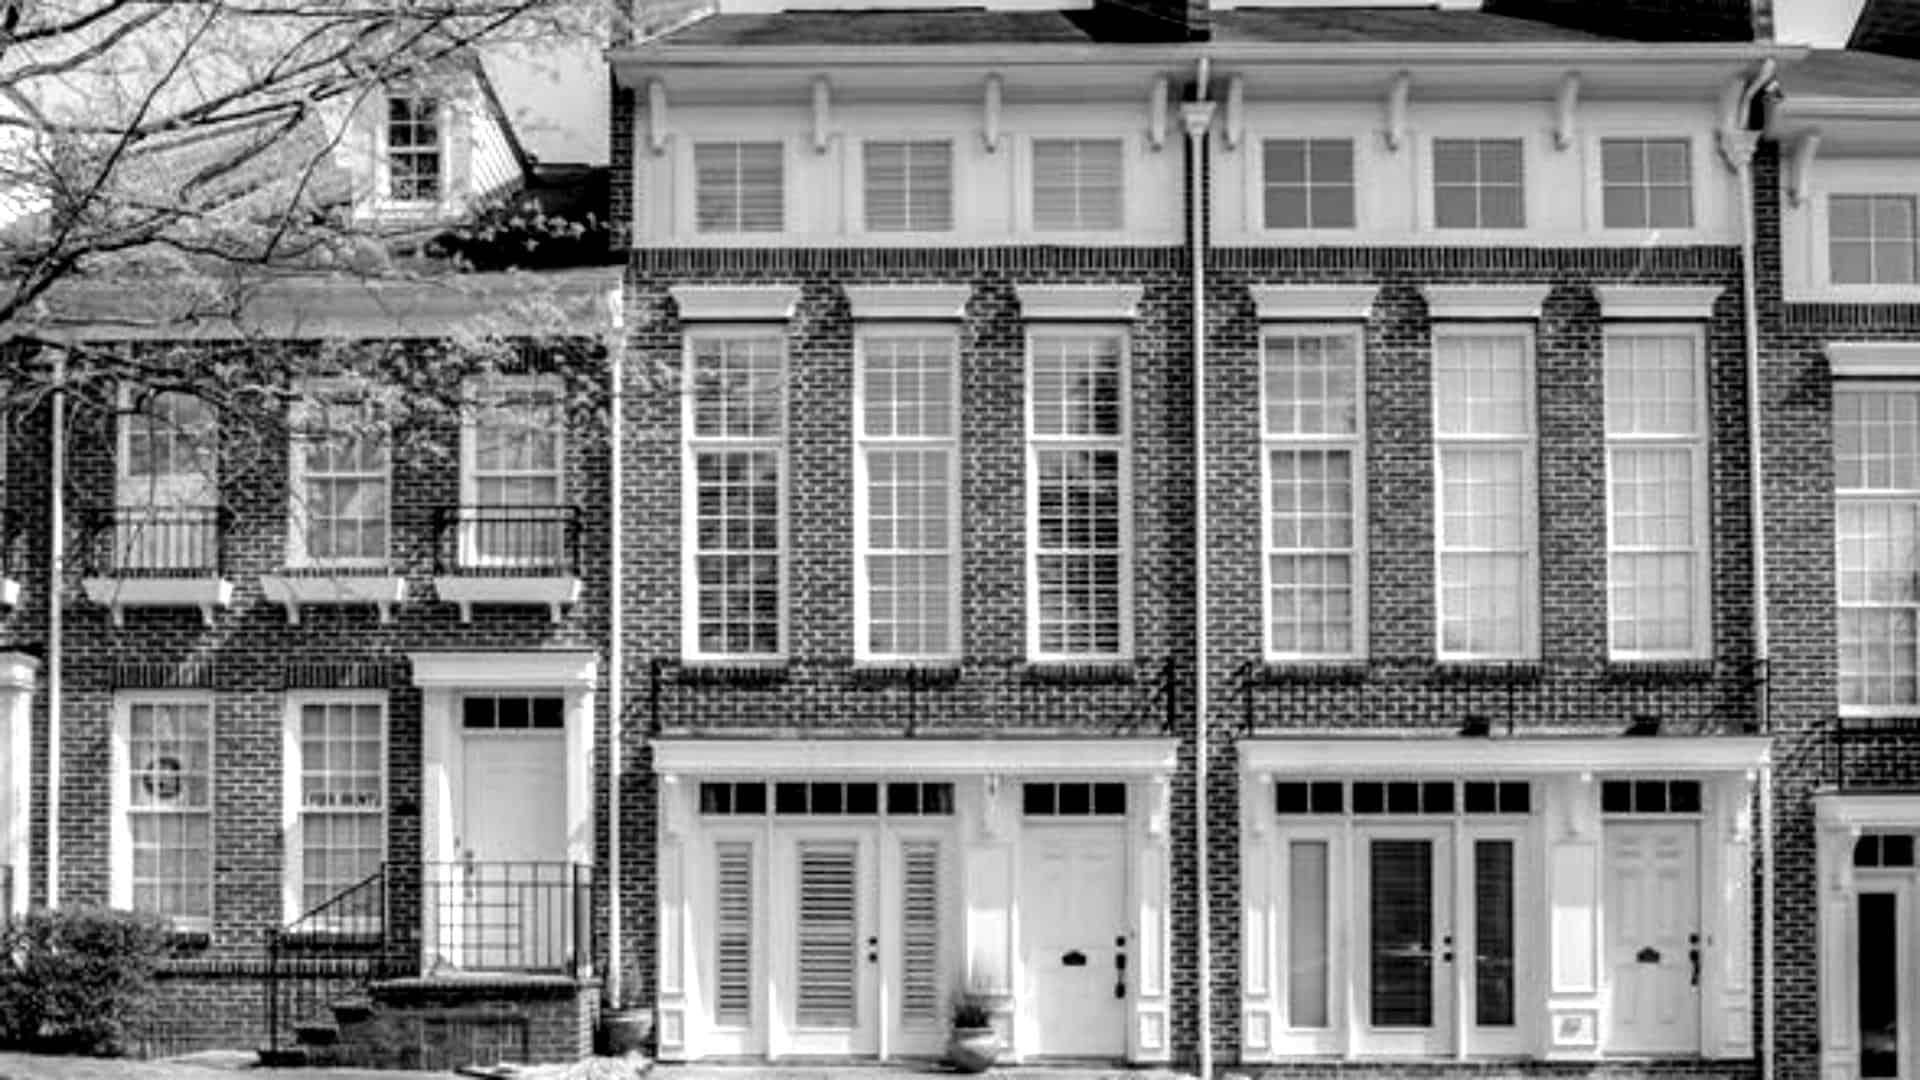 13704-Anthea-Lane-Huntersville-NC-28078-blackwhite